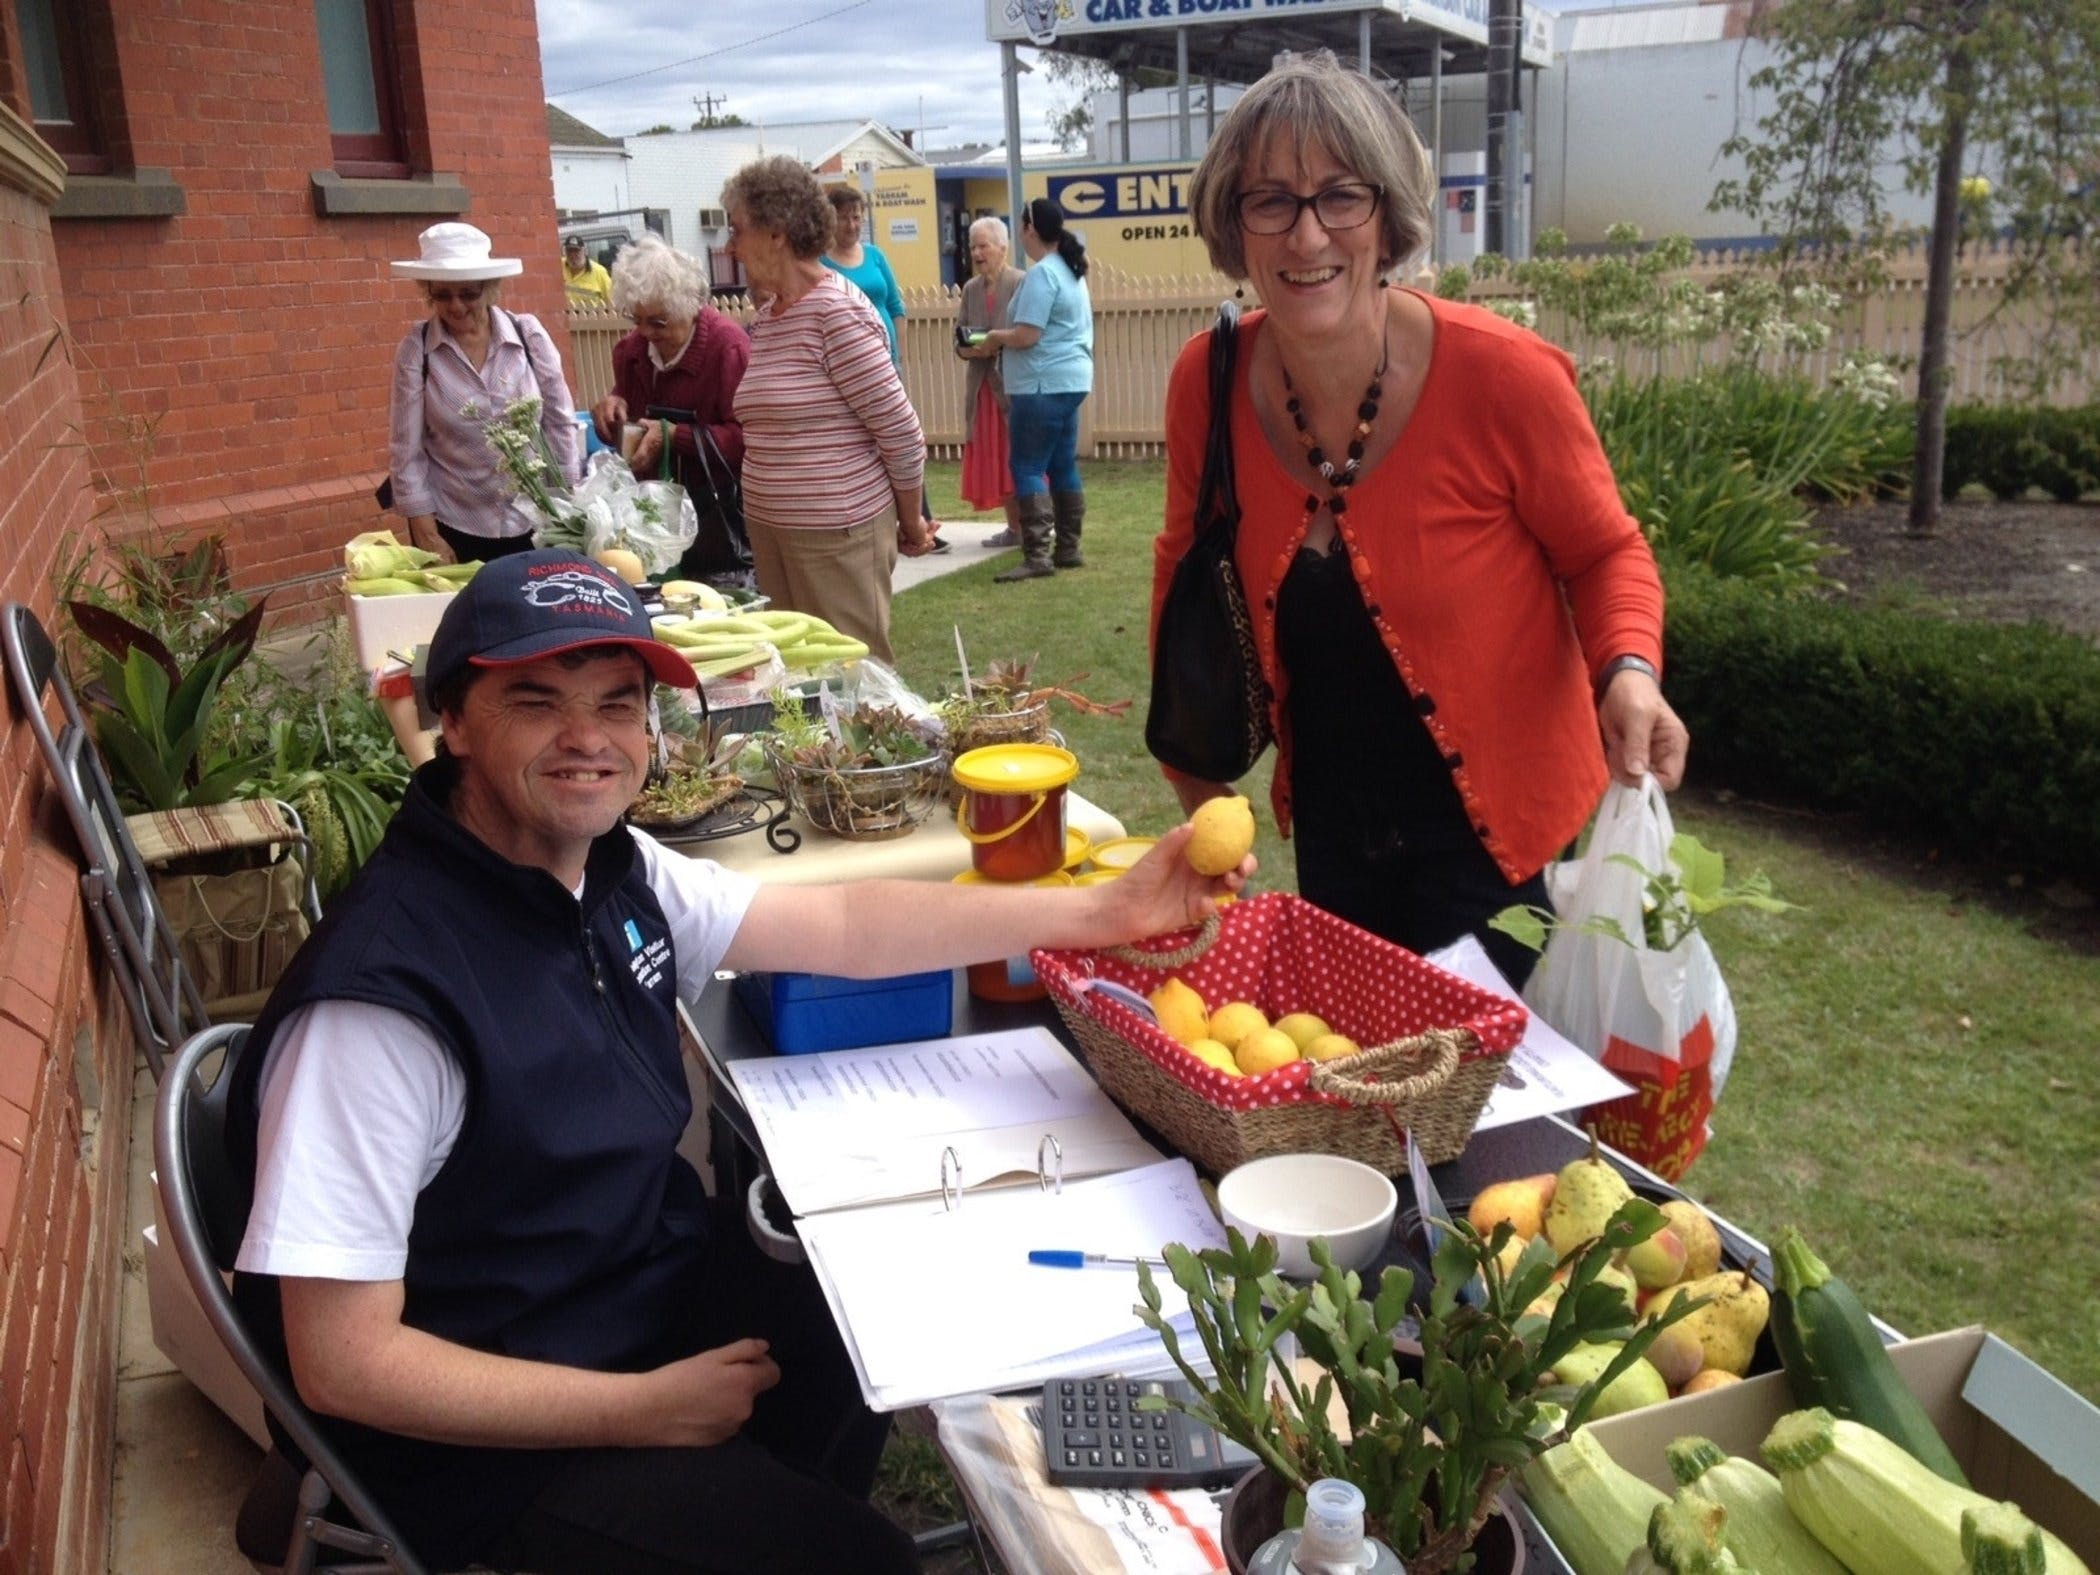 Yarram Courthouse Garden Produce Market - Palm Beach Accommodation